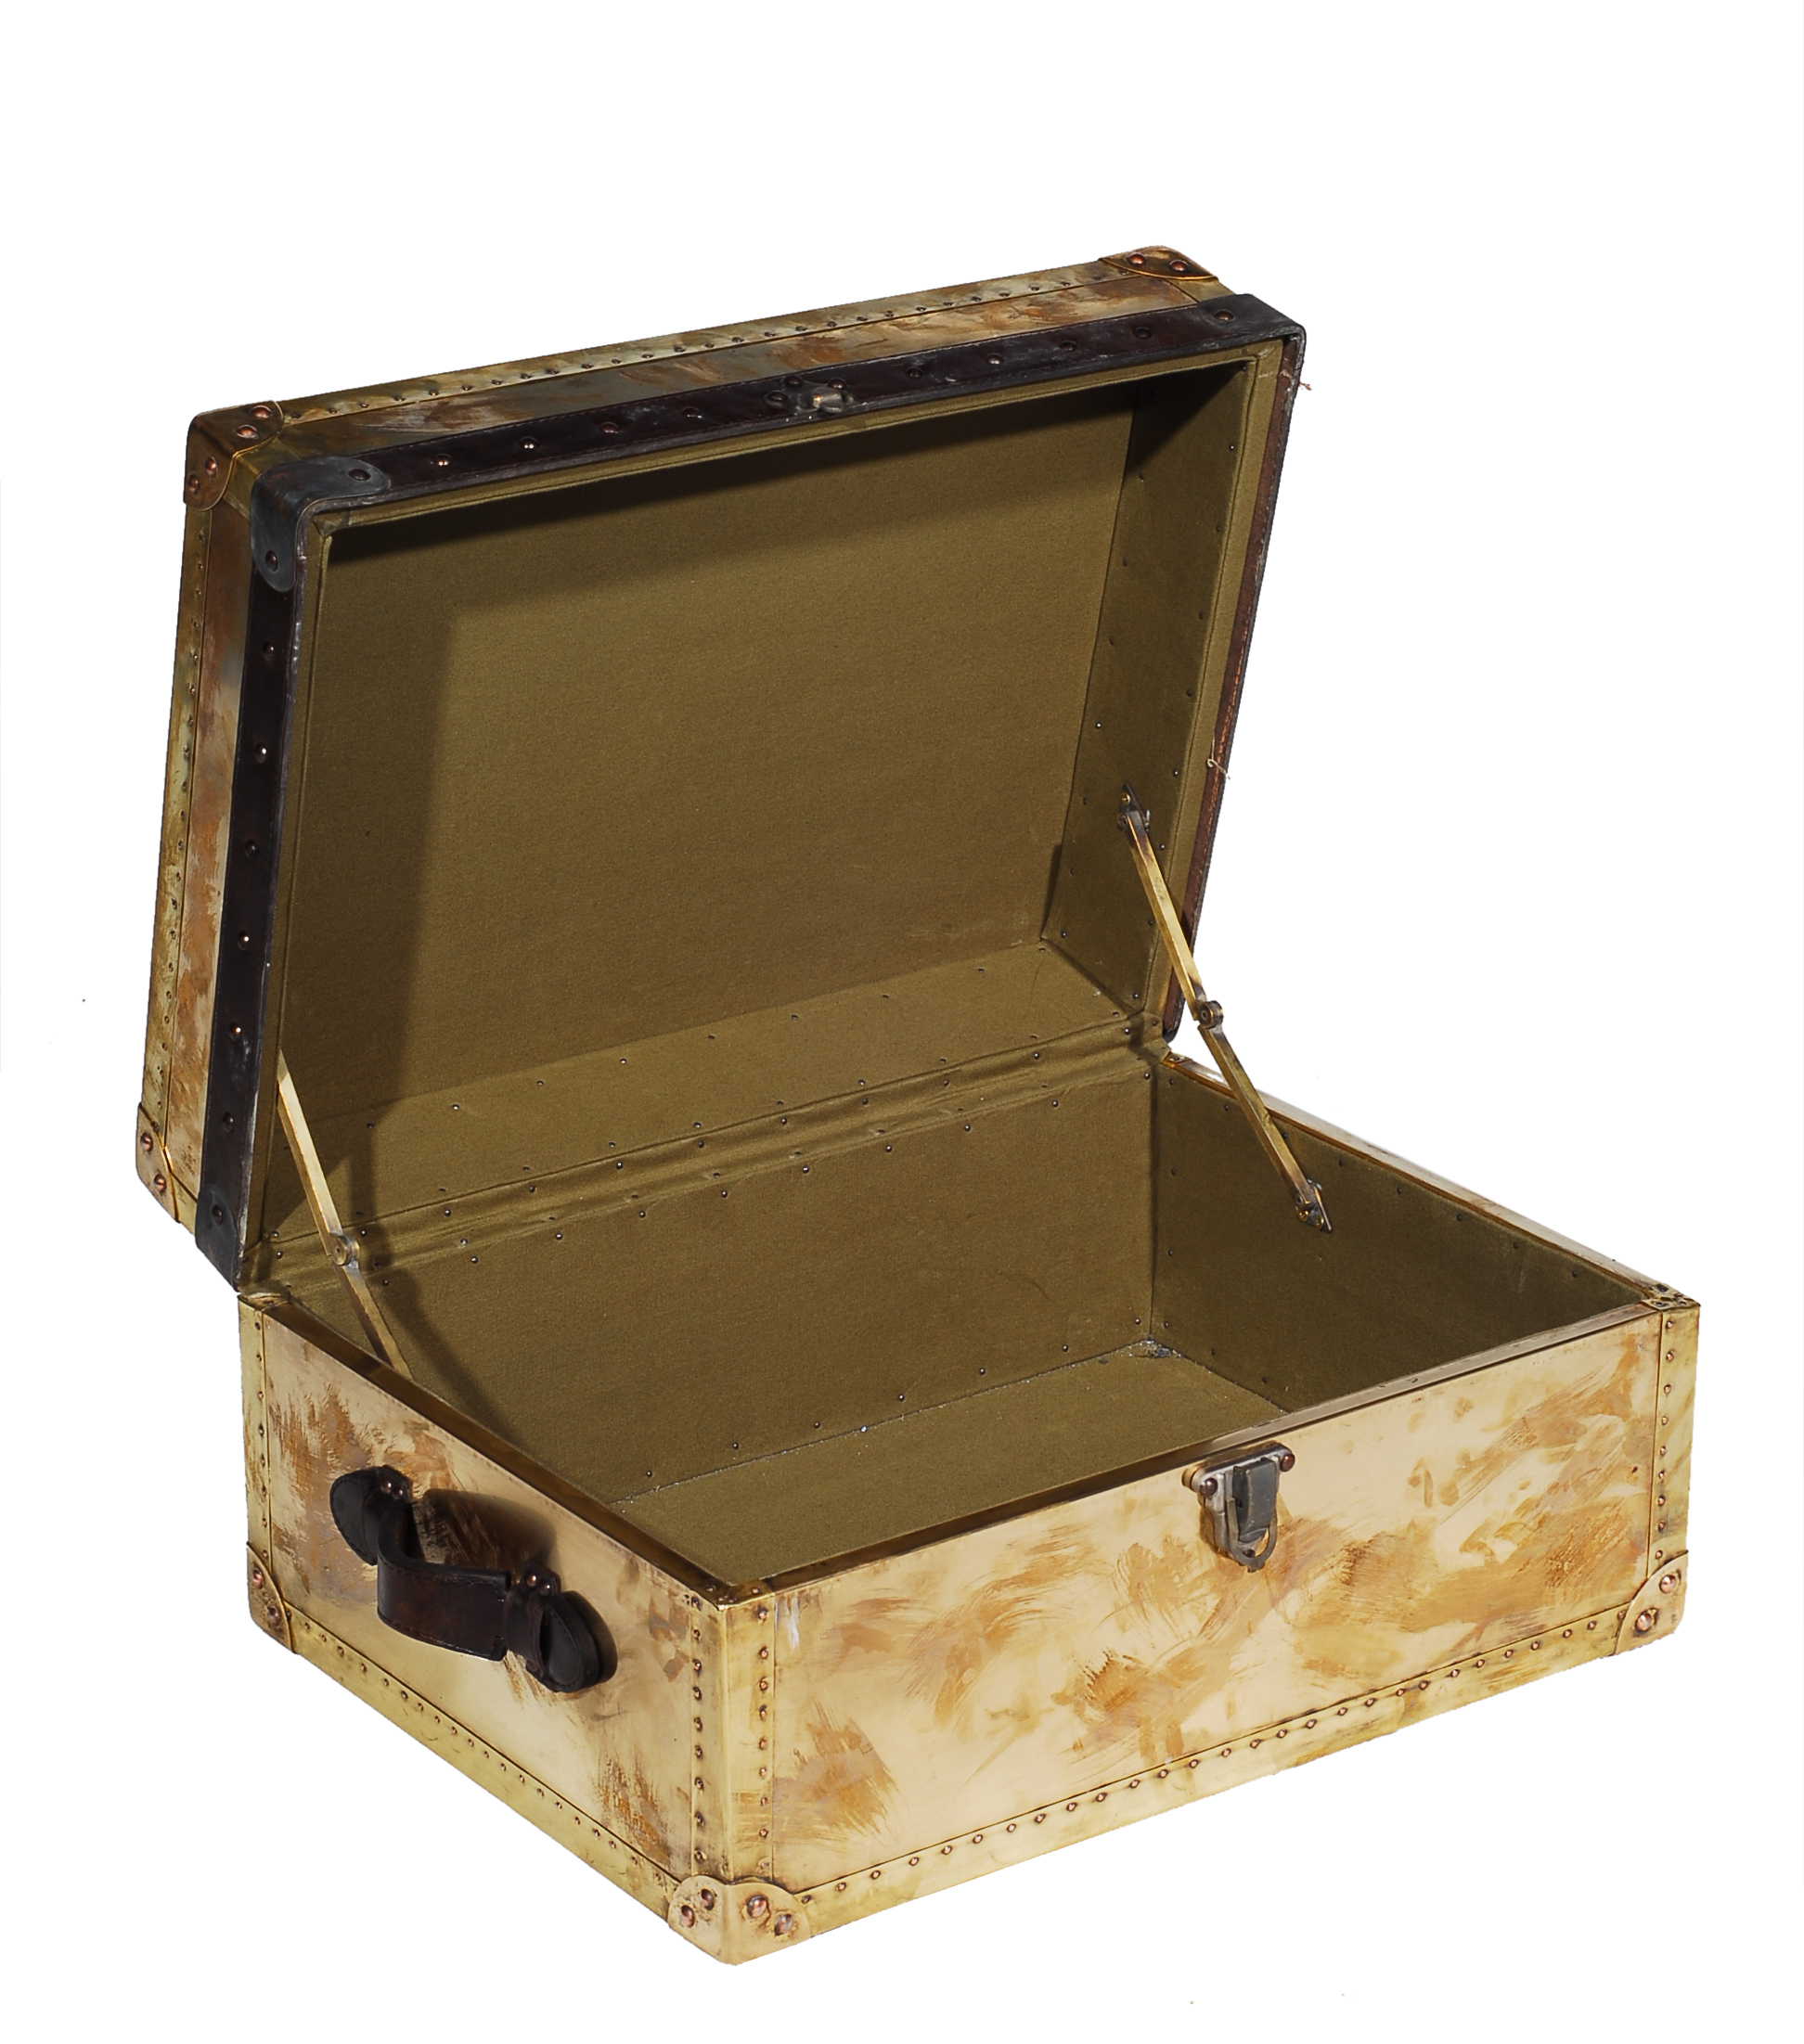 Lot 25 - Watson Trunk Small Trunk Collection Is A Salute The Detailed Construction Of Antique Luggage And